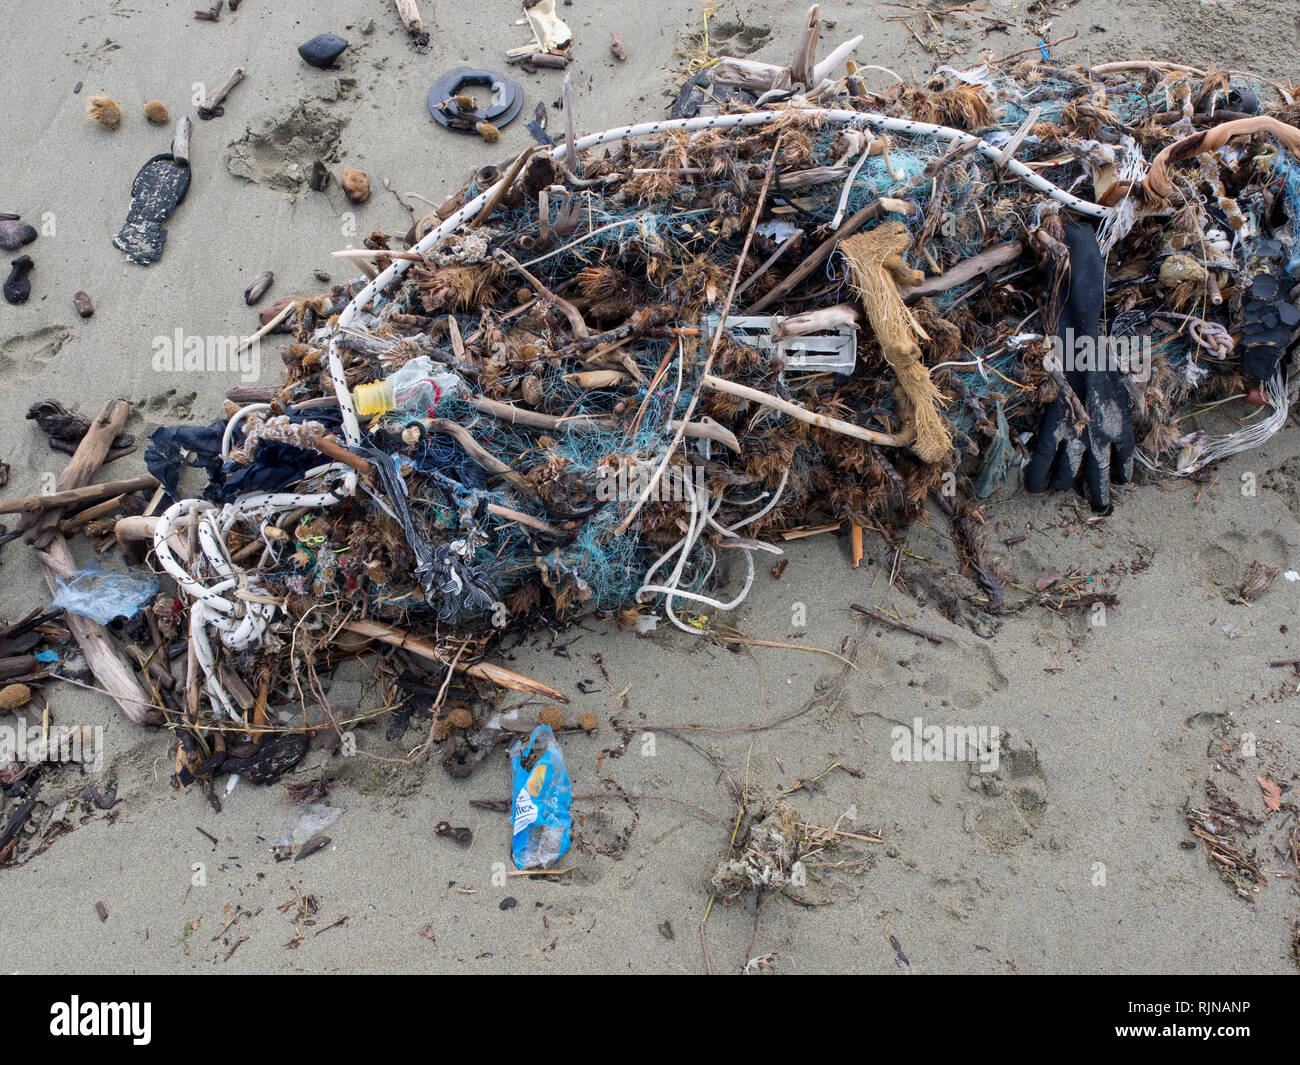 fishing net arrived on the beach full of plastic waste. Symbol fo ocean pollution. Danger fo marine life - Stock Image